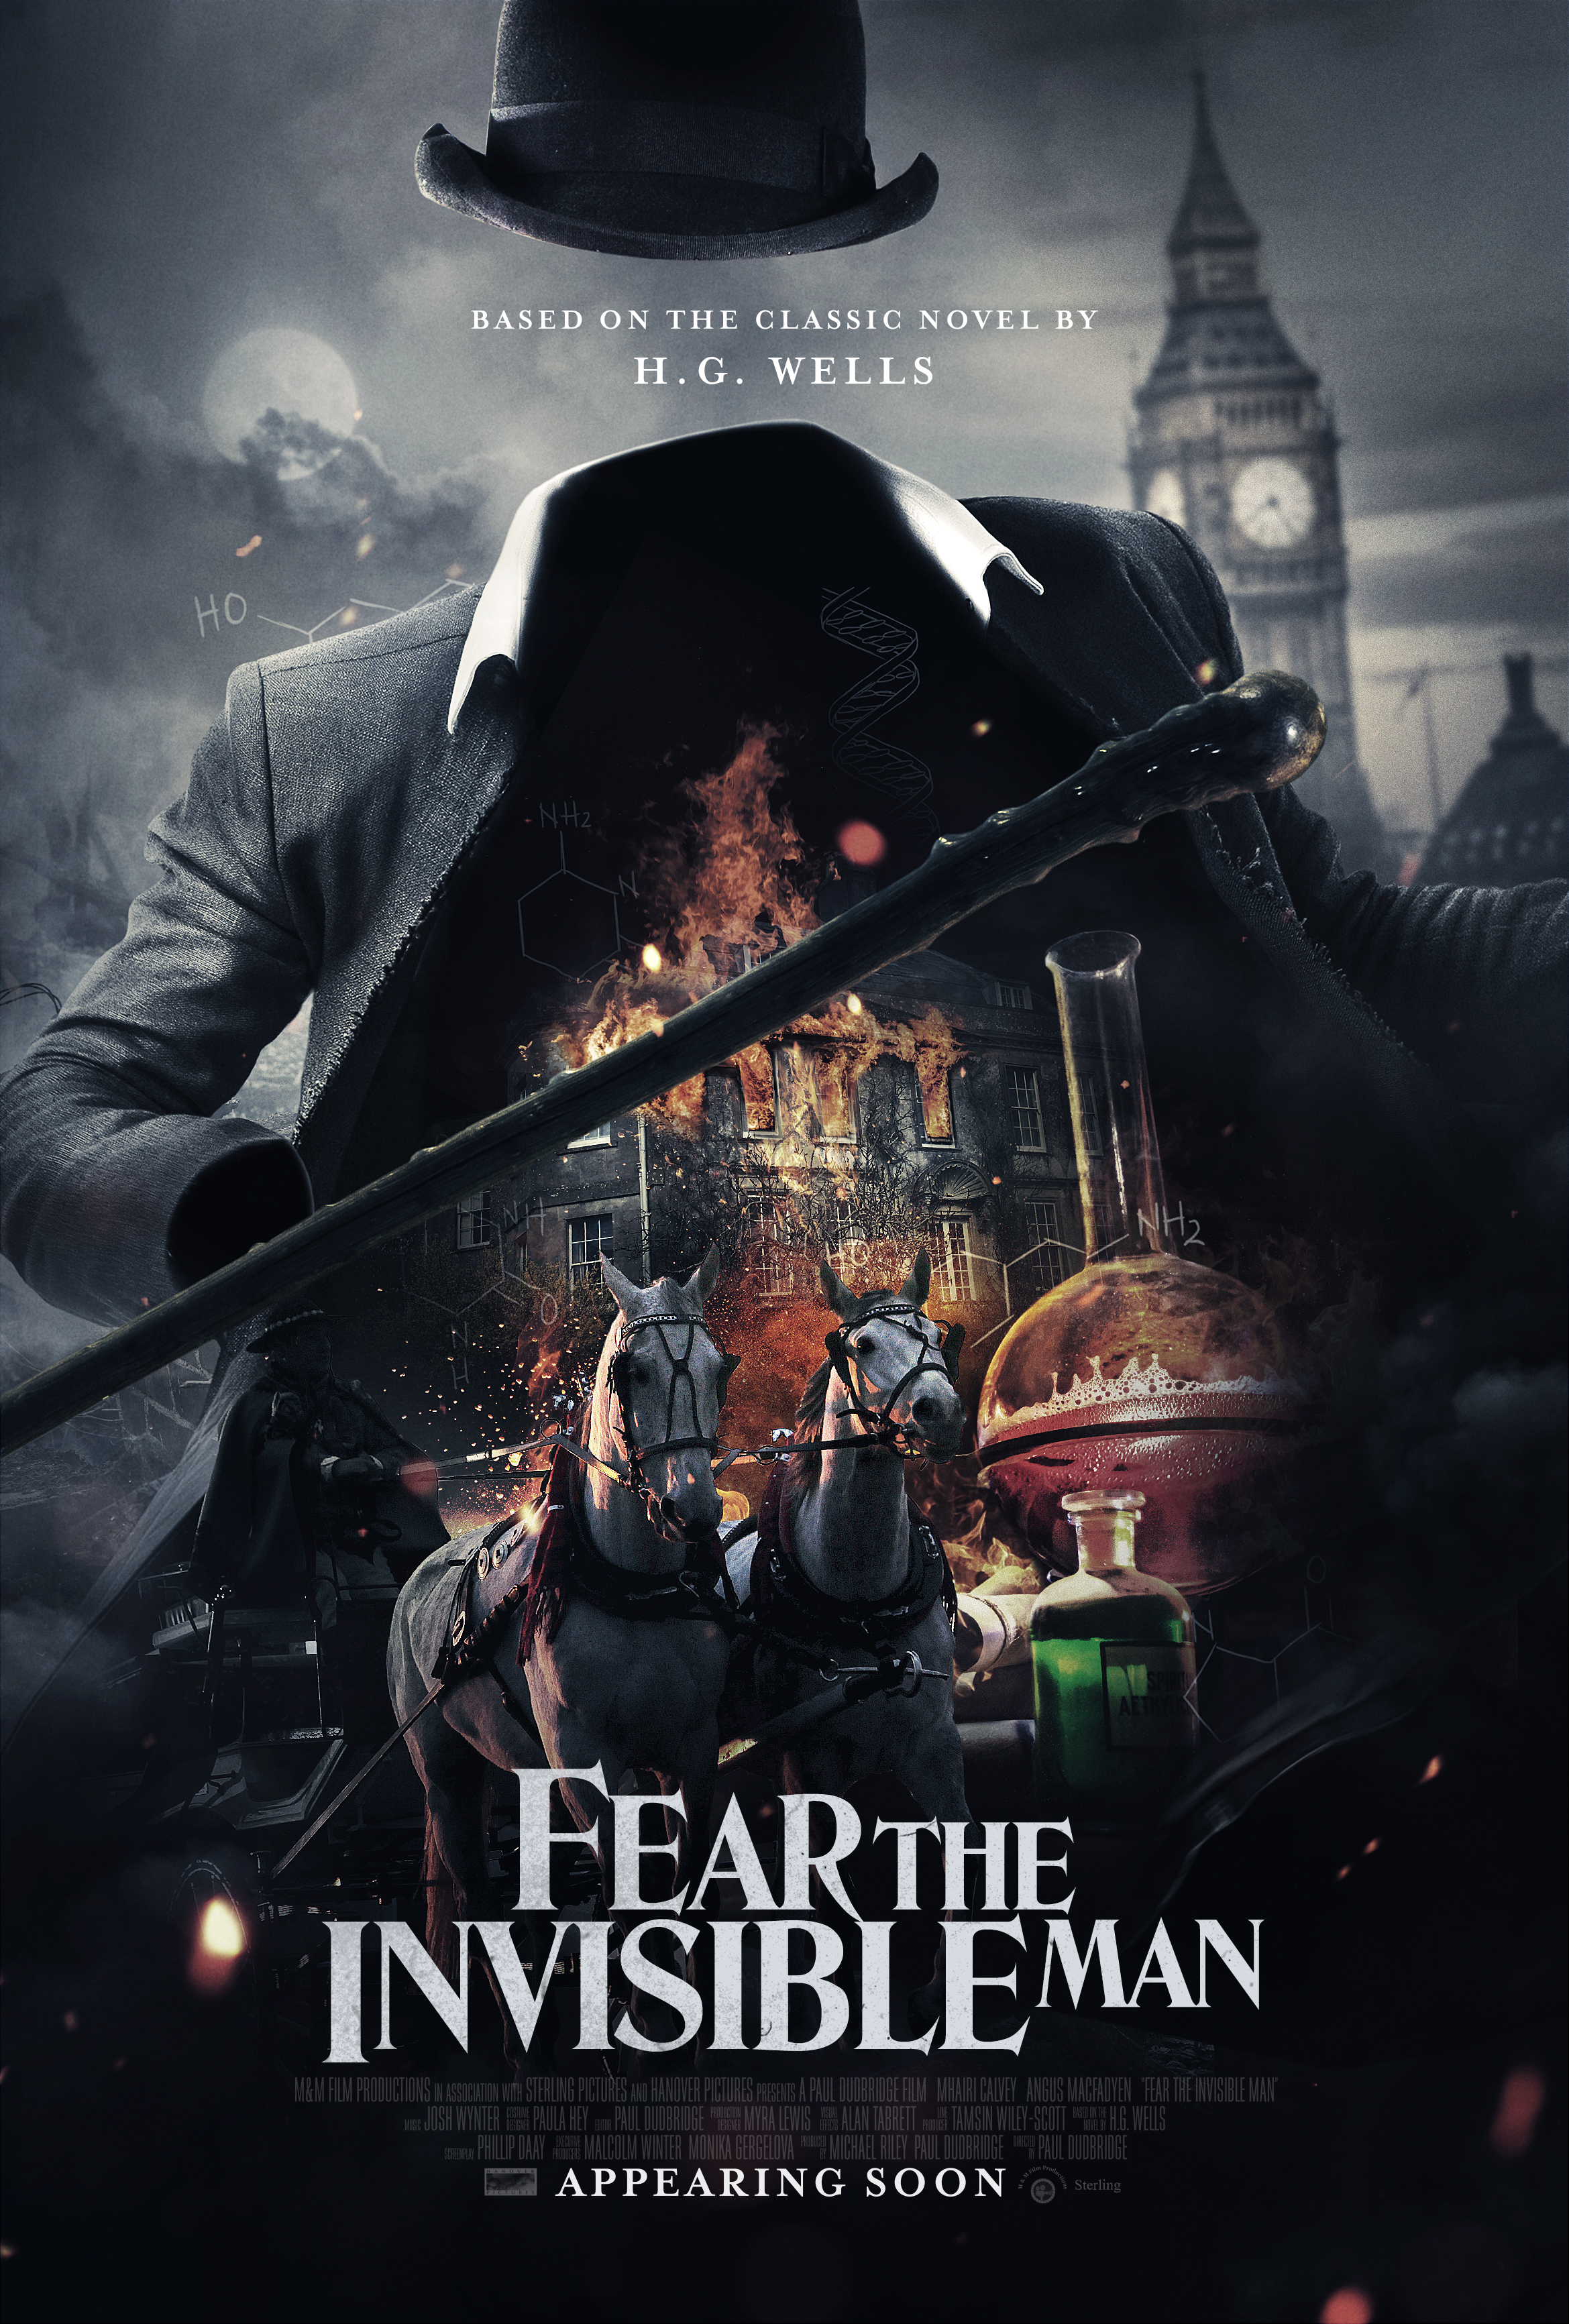 Fear the Invisible Man - IMDb